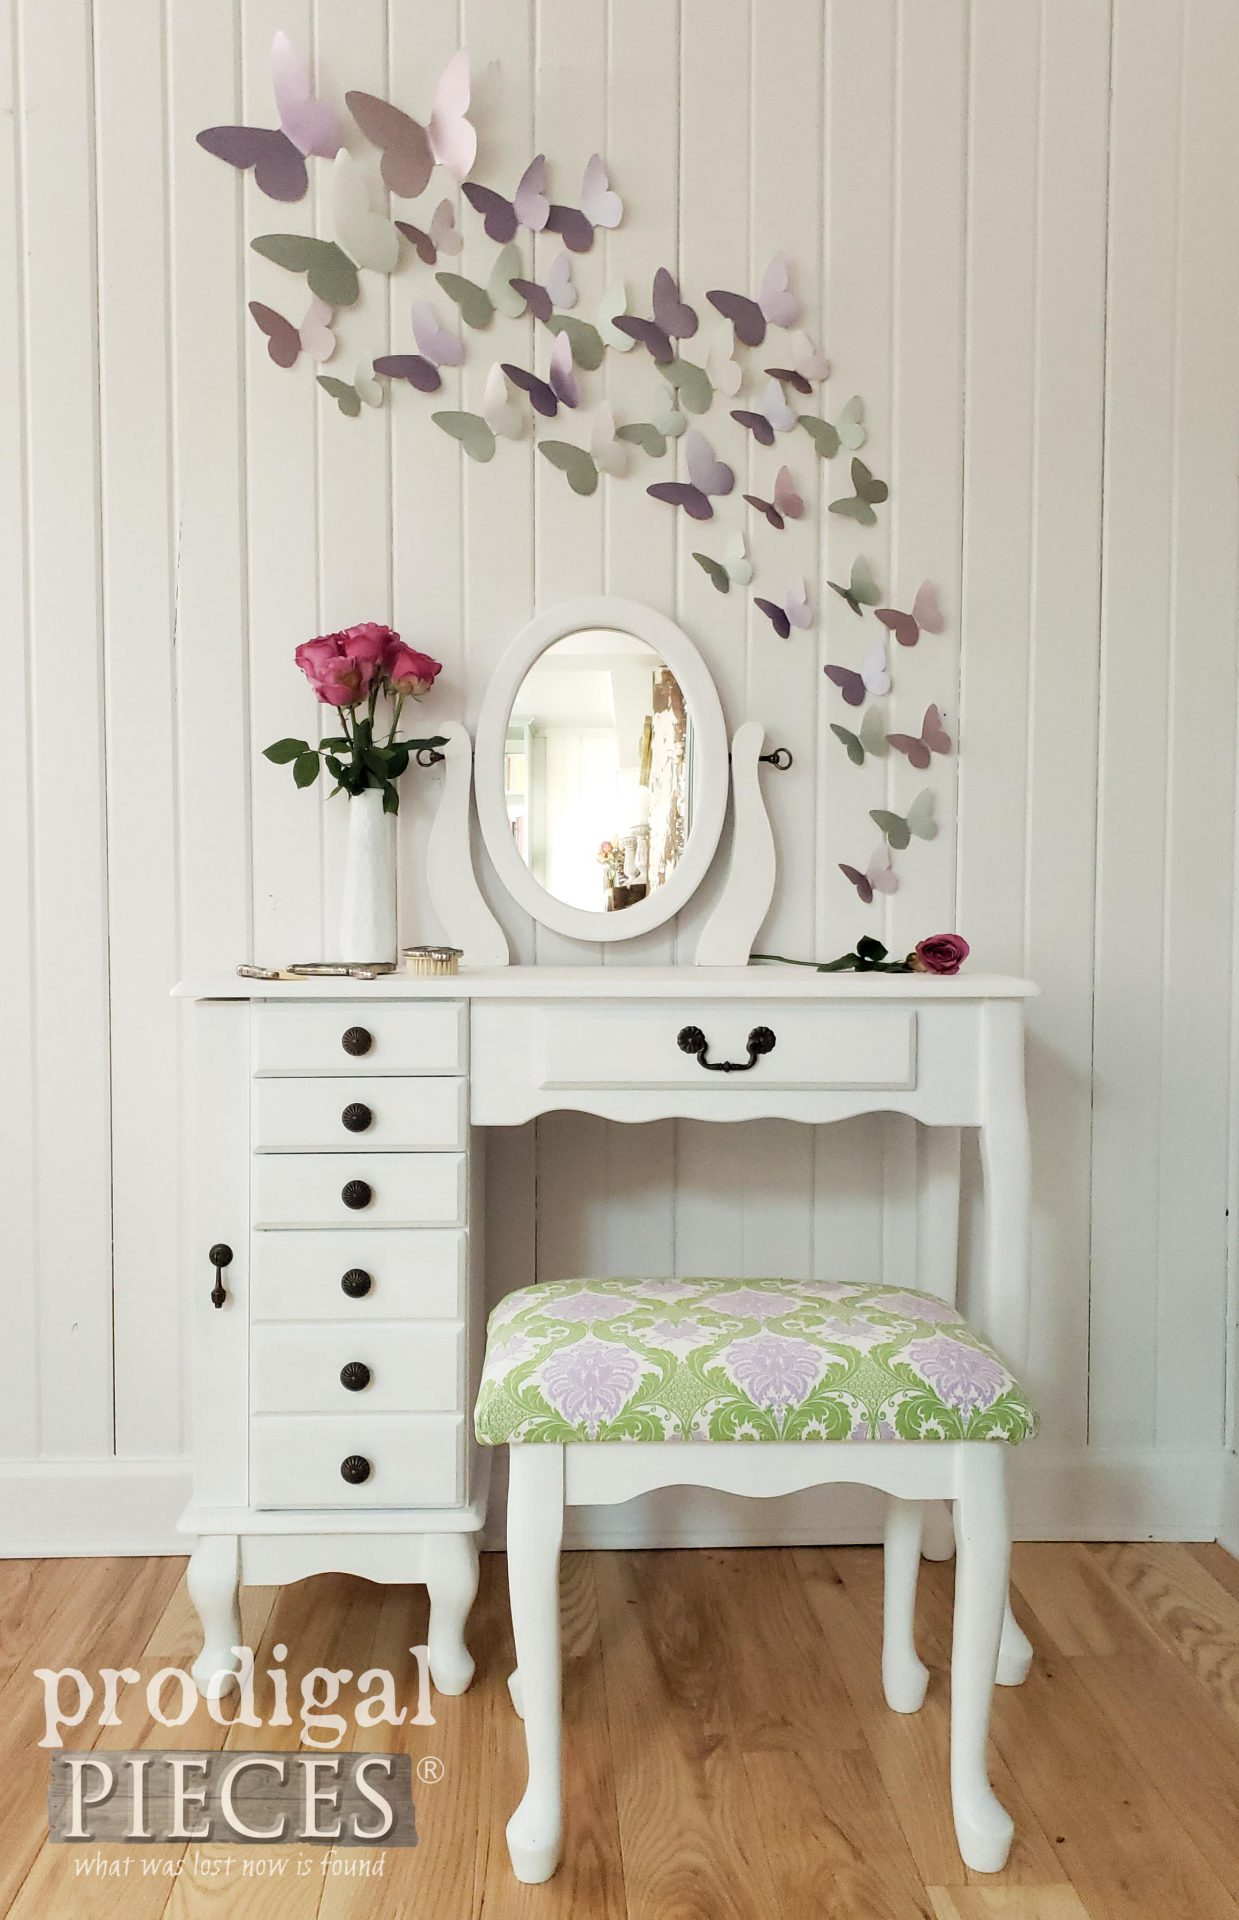 Adorable Girls Vanity Table in White refinished by Prodigal Pieces | prodigalpieces.com #prodigalpieces #diy #furniture #home #homedecor #kids